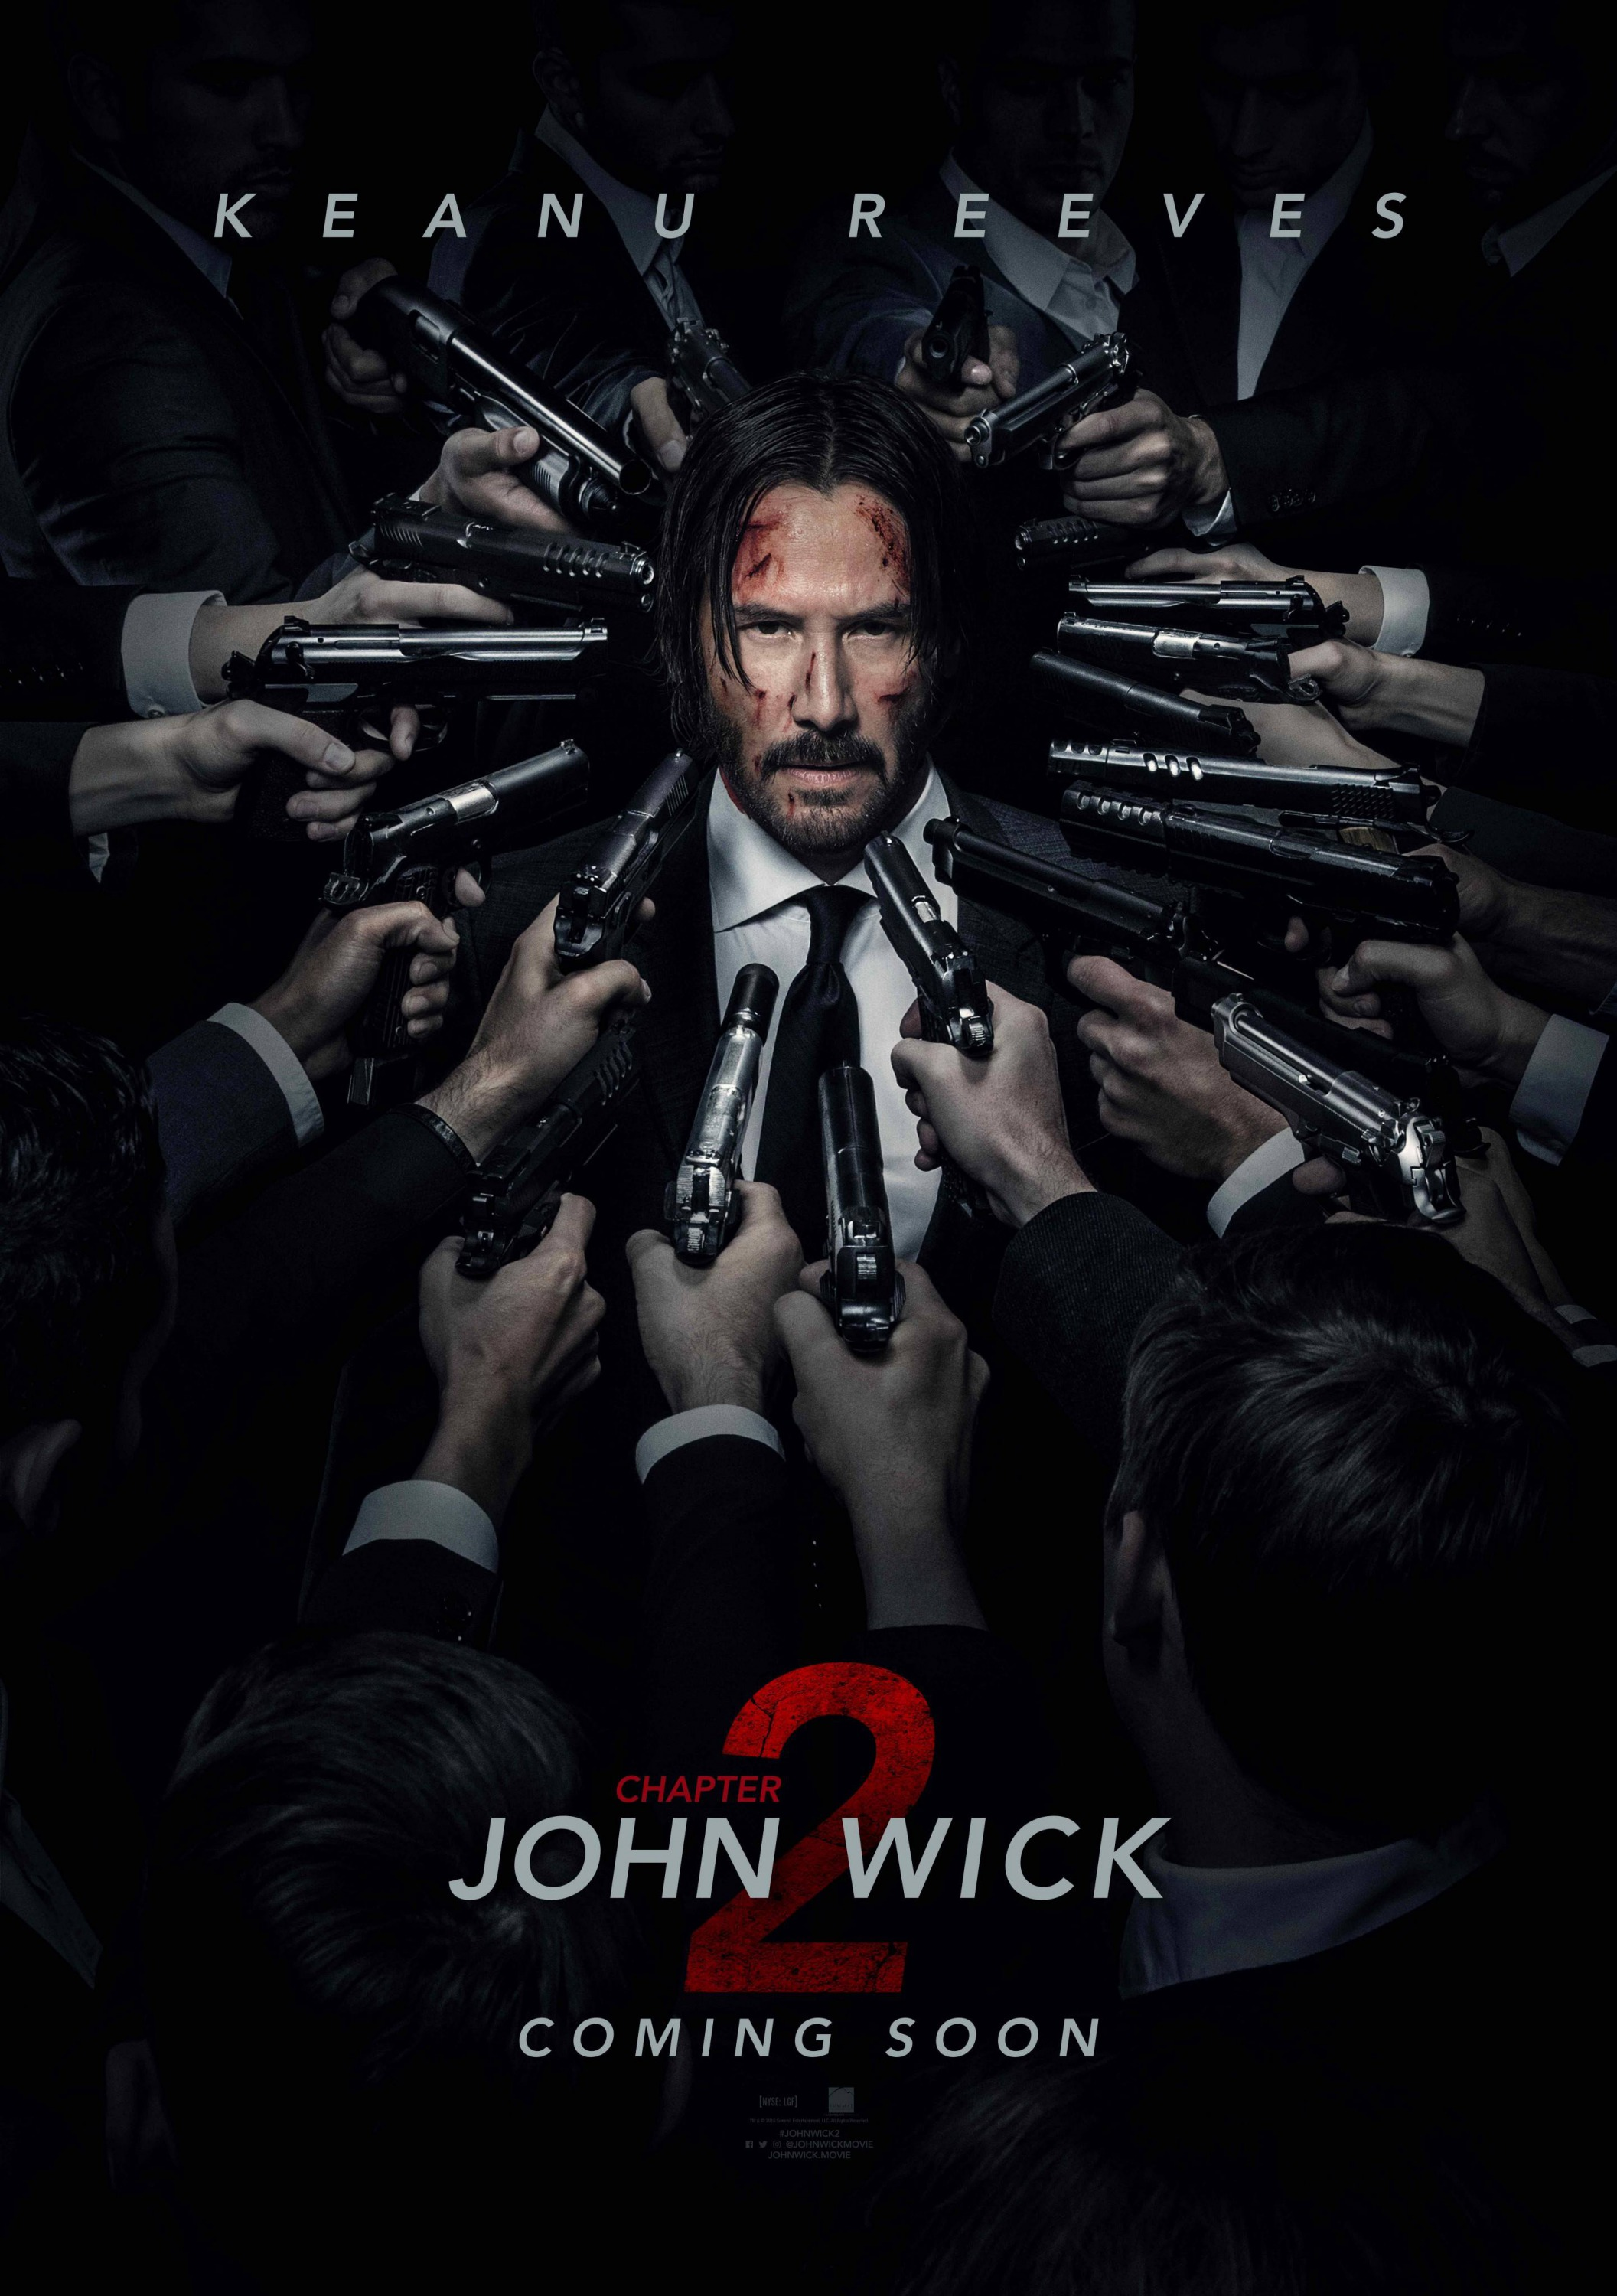 john-wick-chapter-2-xlg-10outubro2016-3